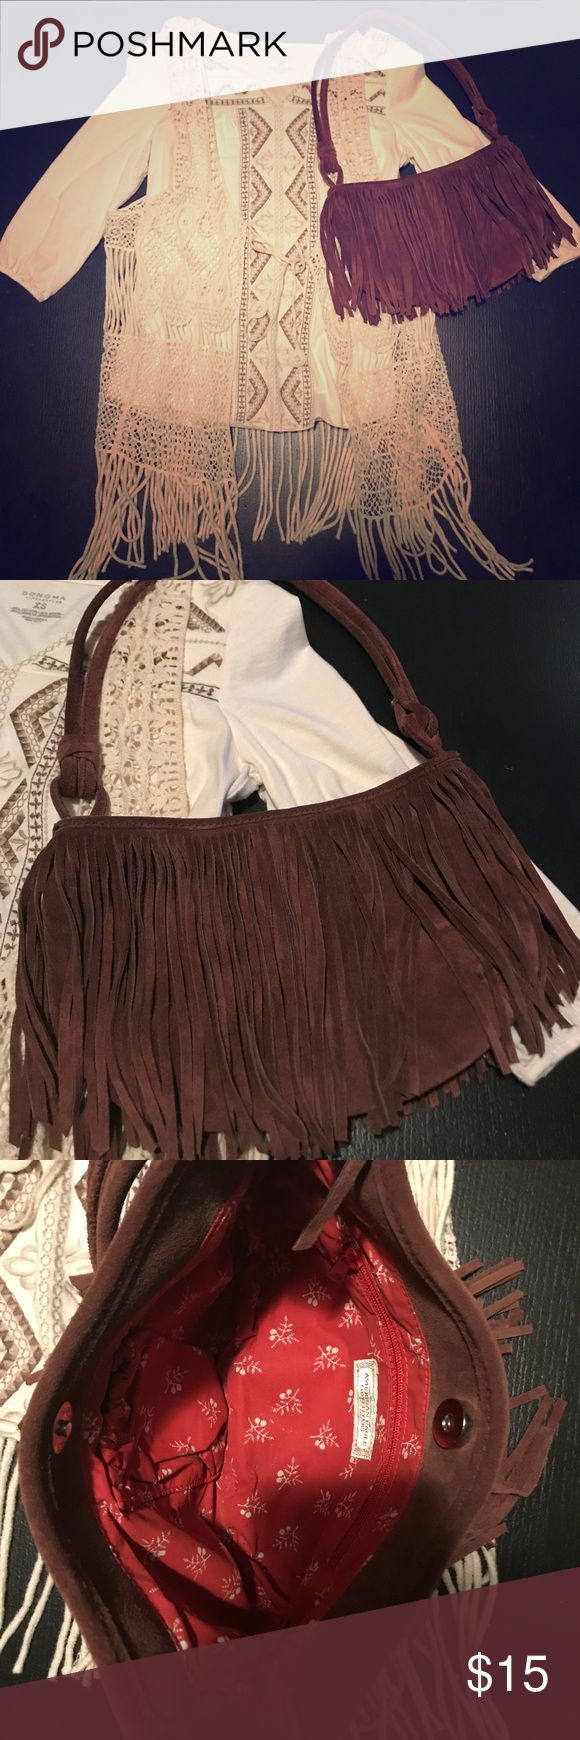 American Eagle Outfitters Handbag Like New! American Eagle Outfitters fringe handbag. Very clean inside. No rips or tears in lining. No stains. American Eagle Outfitters Bags Shoulder Bags